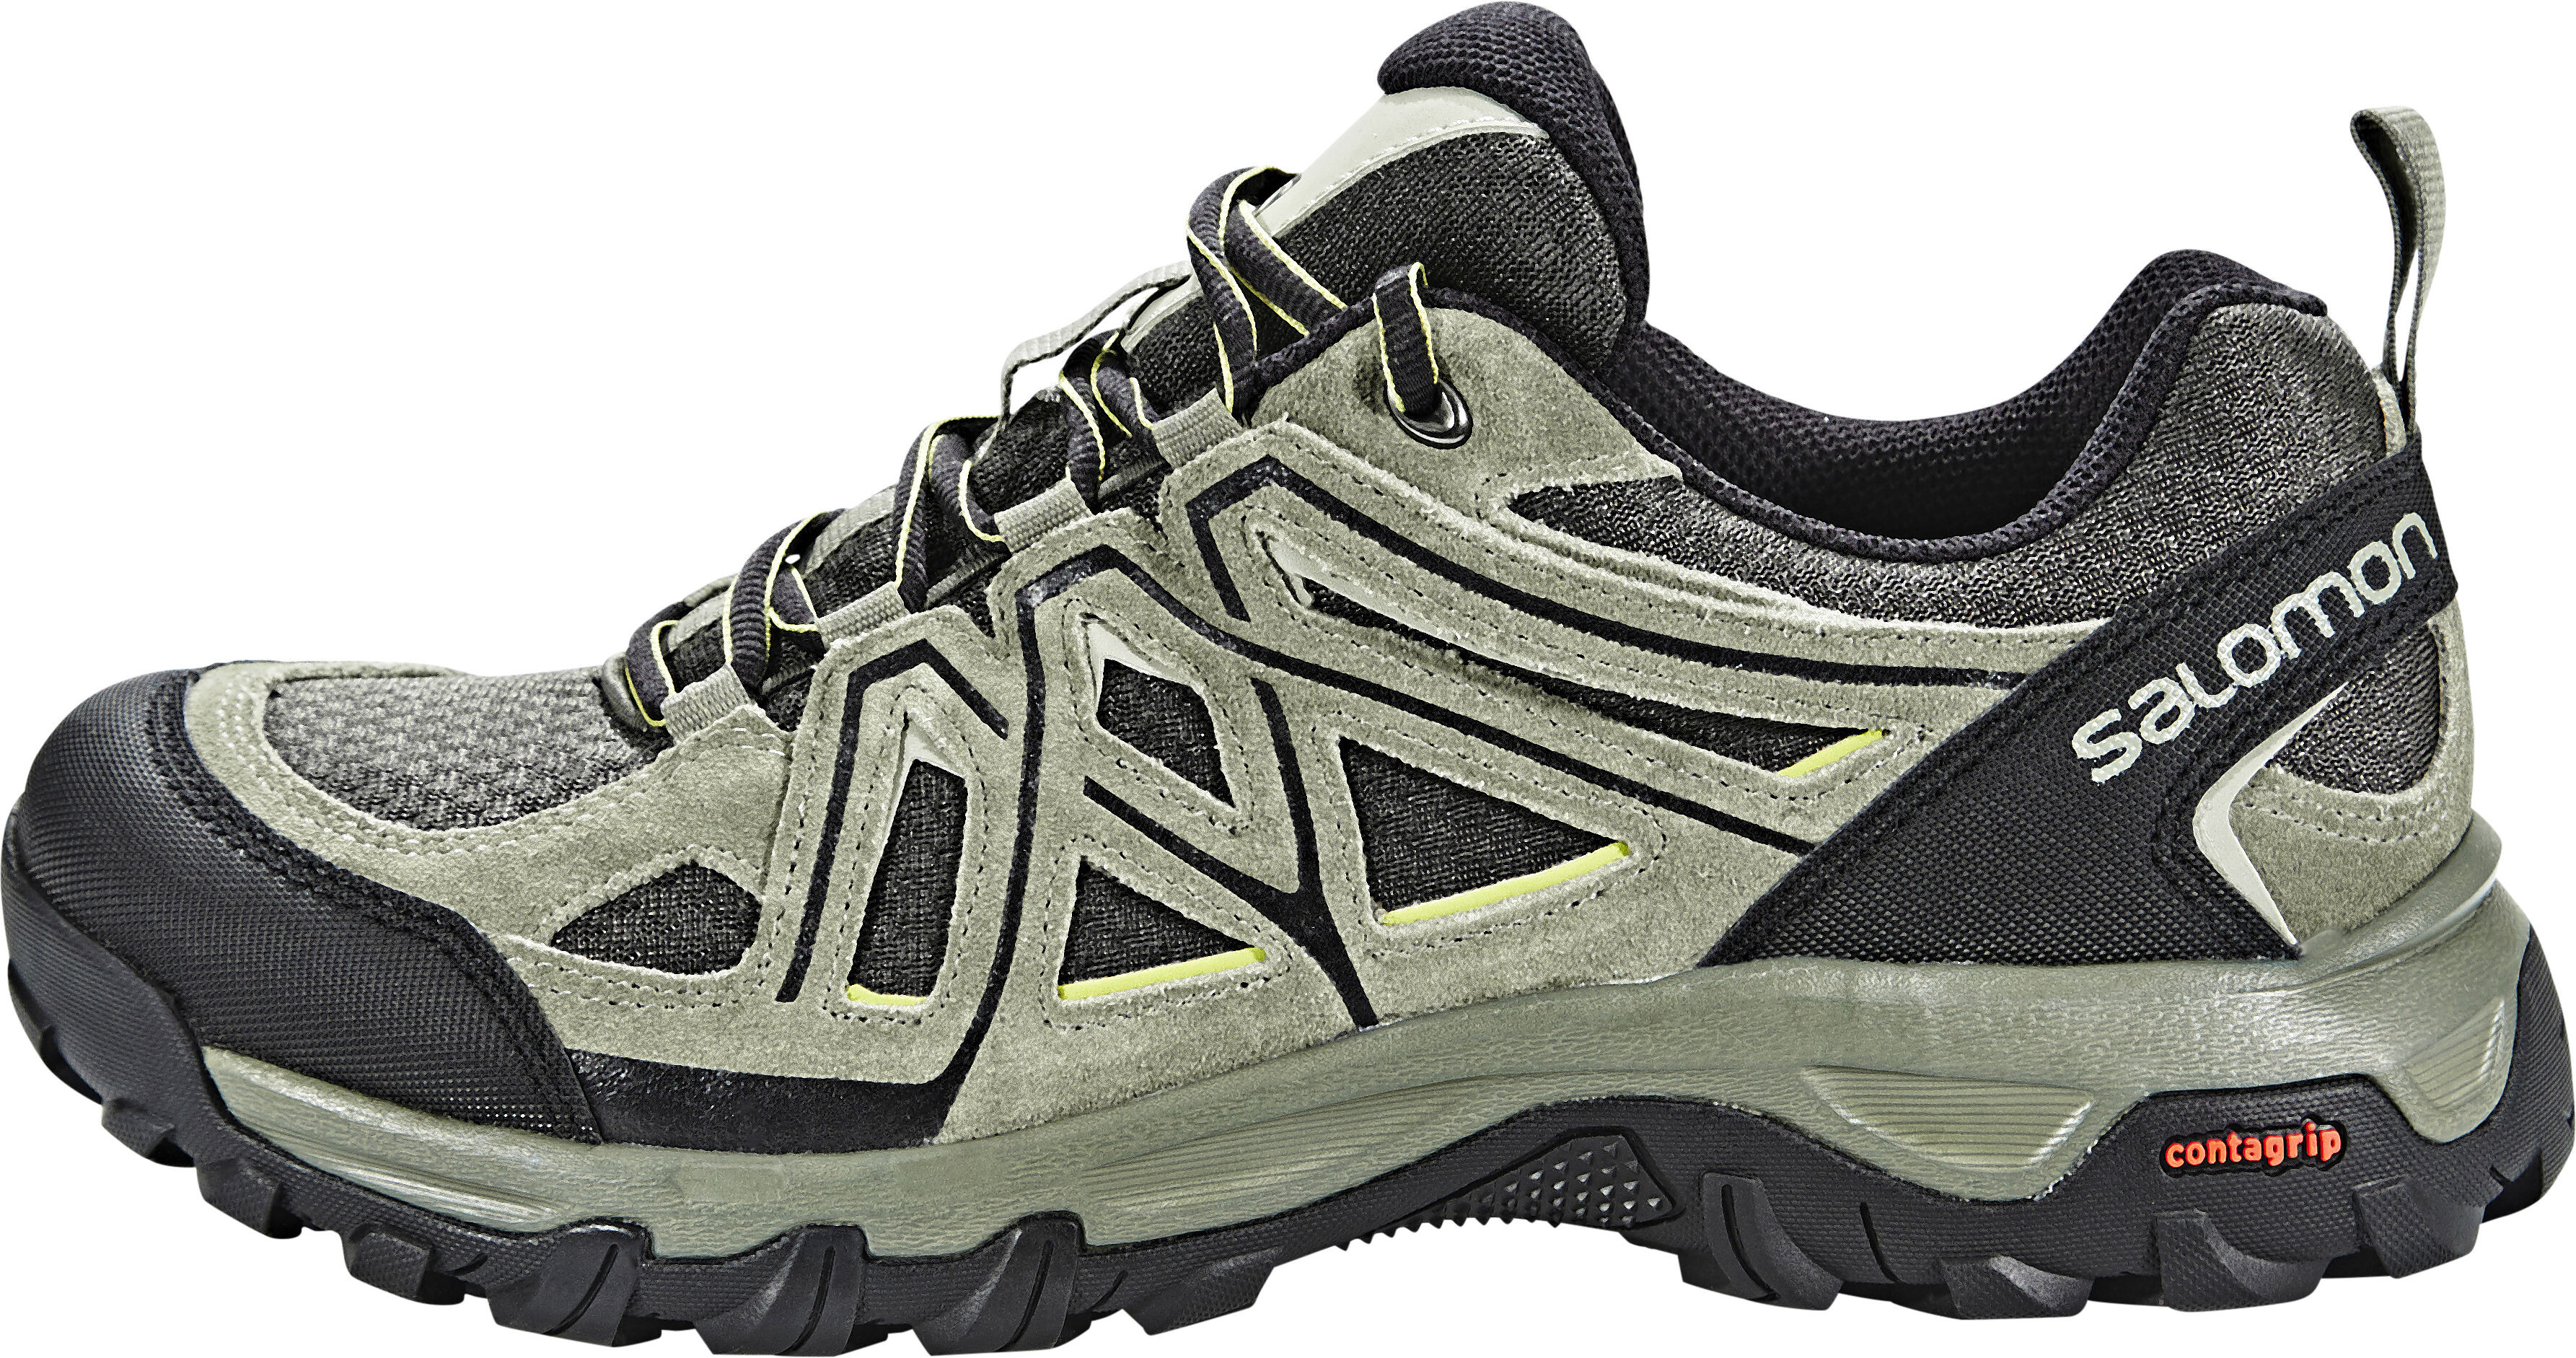 4c54ed11613 Salomon Evasion 2 Aero Hiking Shoes Men castor gray/beluga/fern